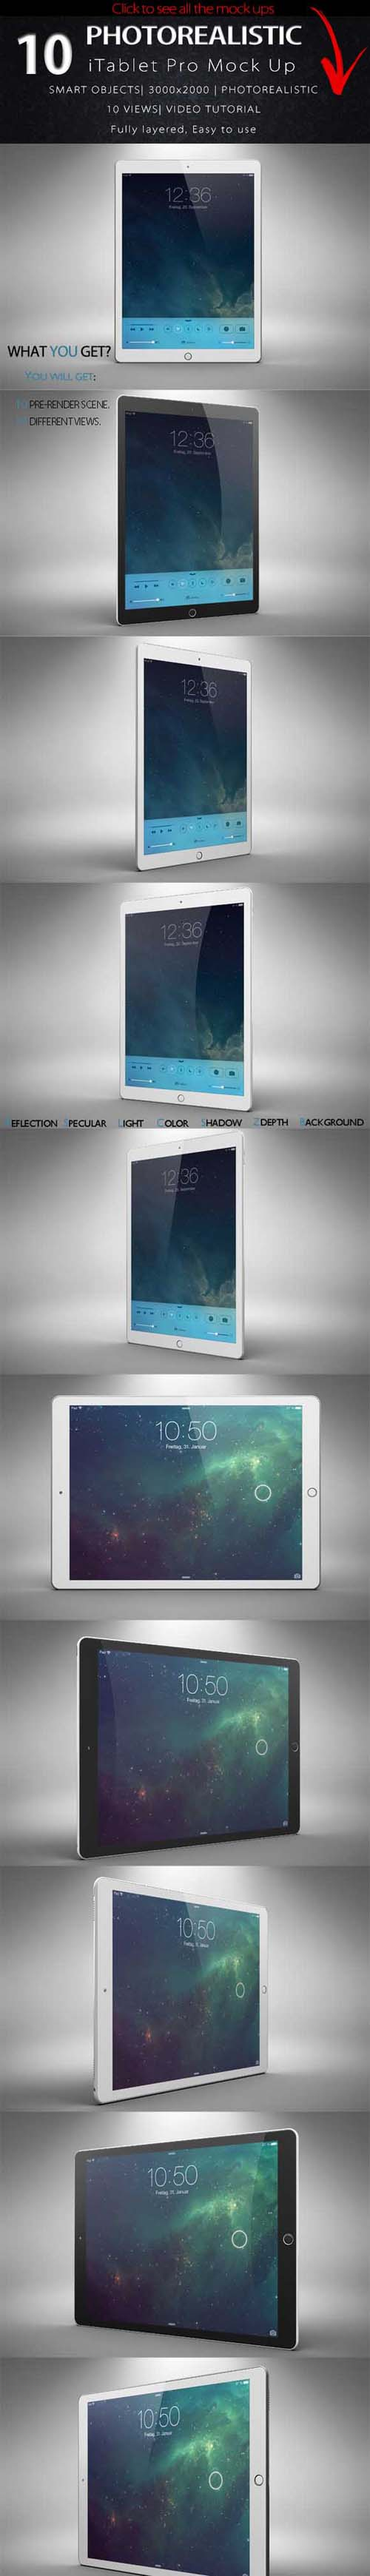 BUNDLE New iPad Pro Mock Up